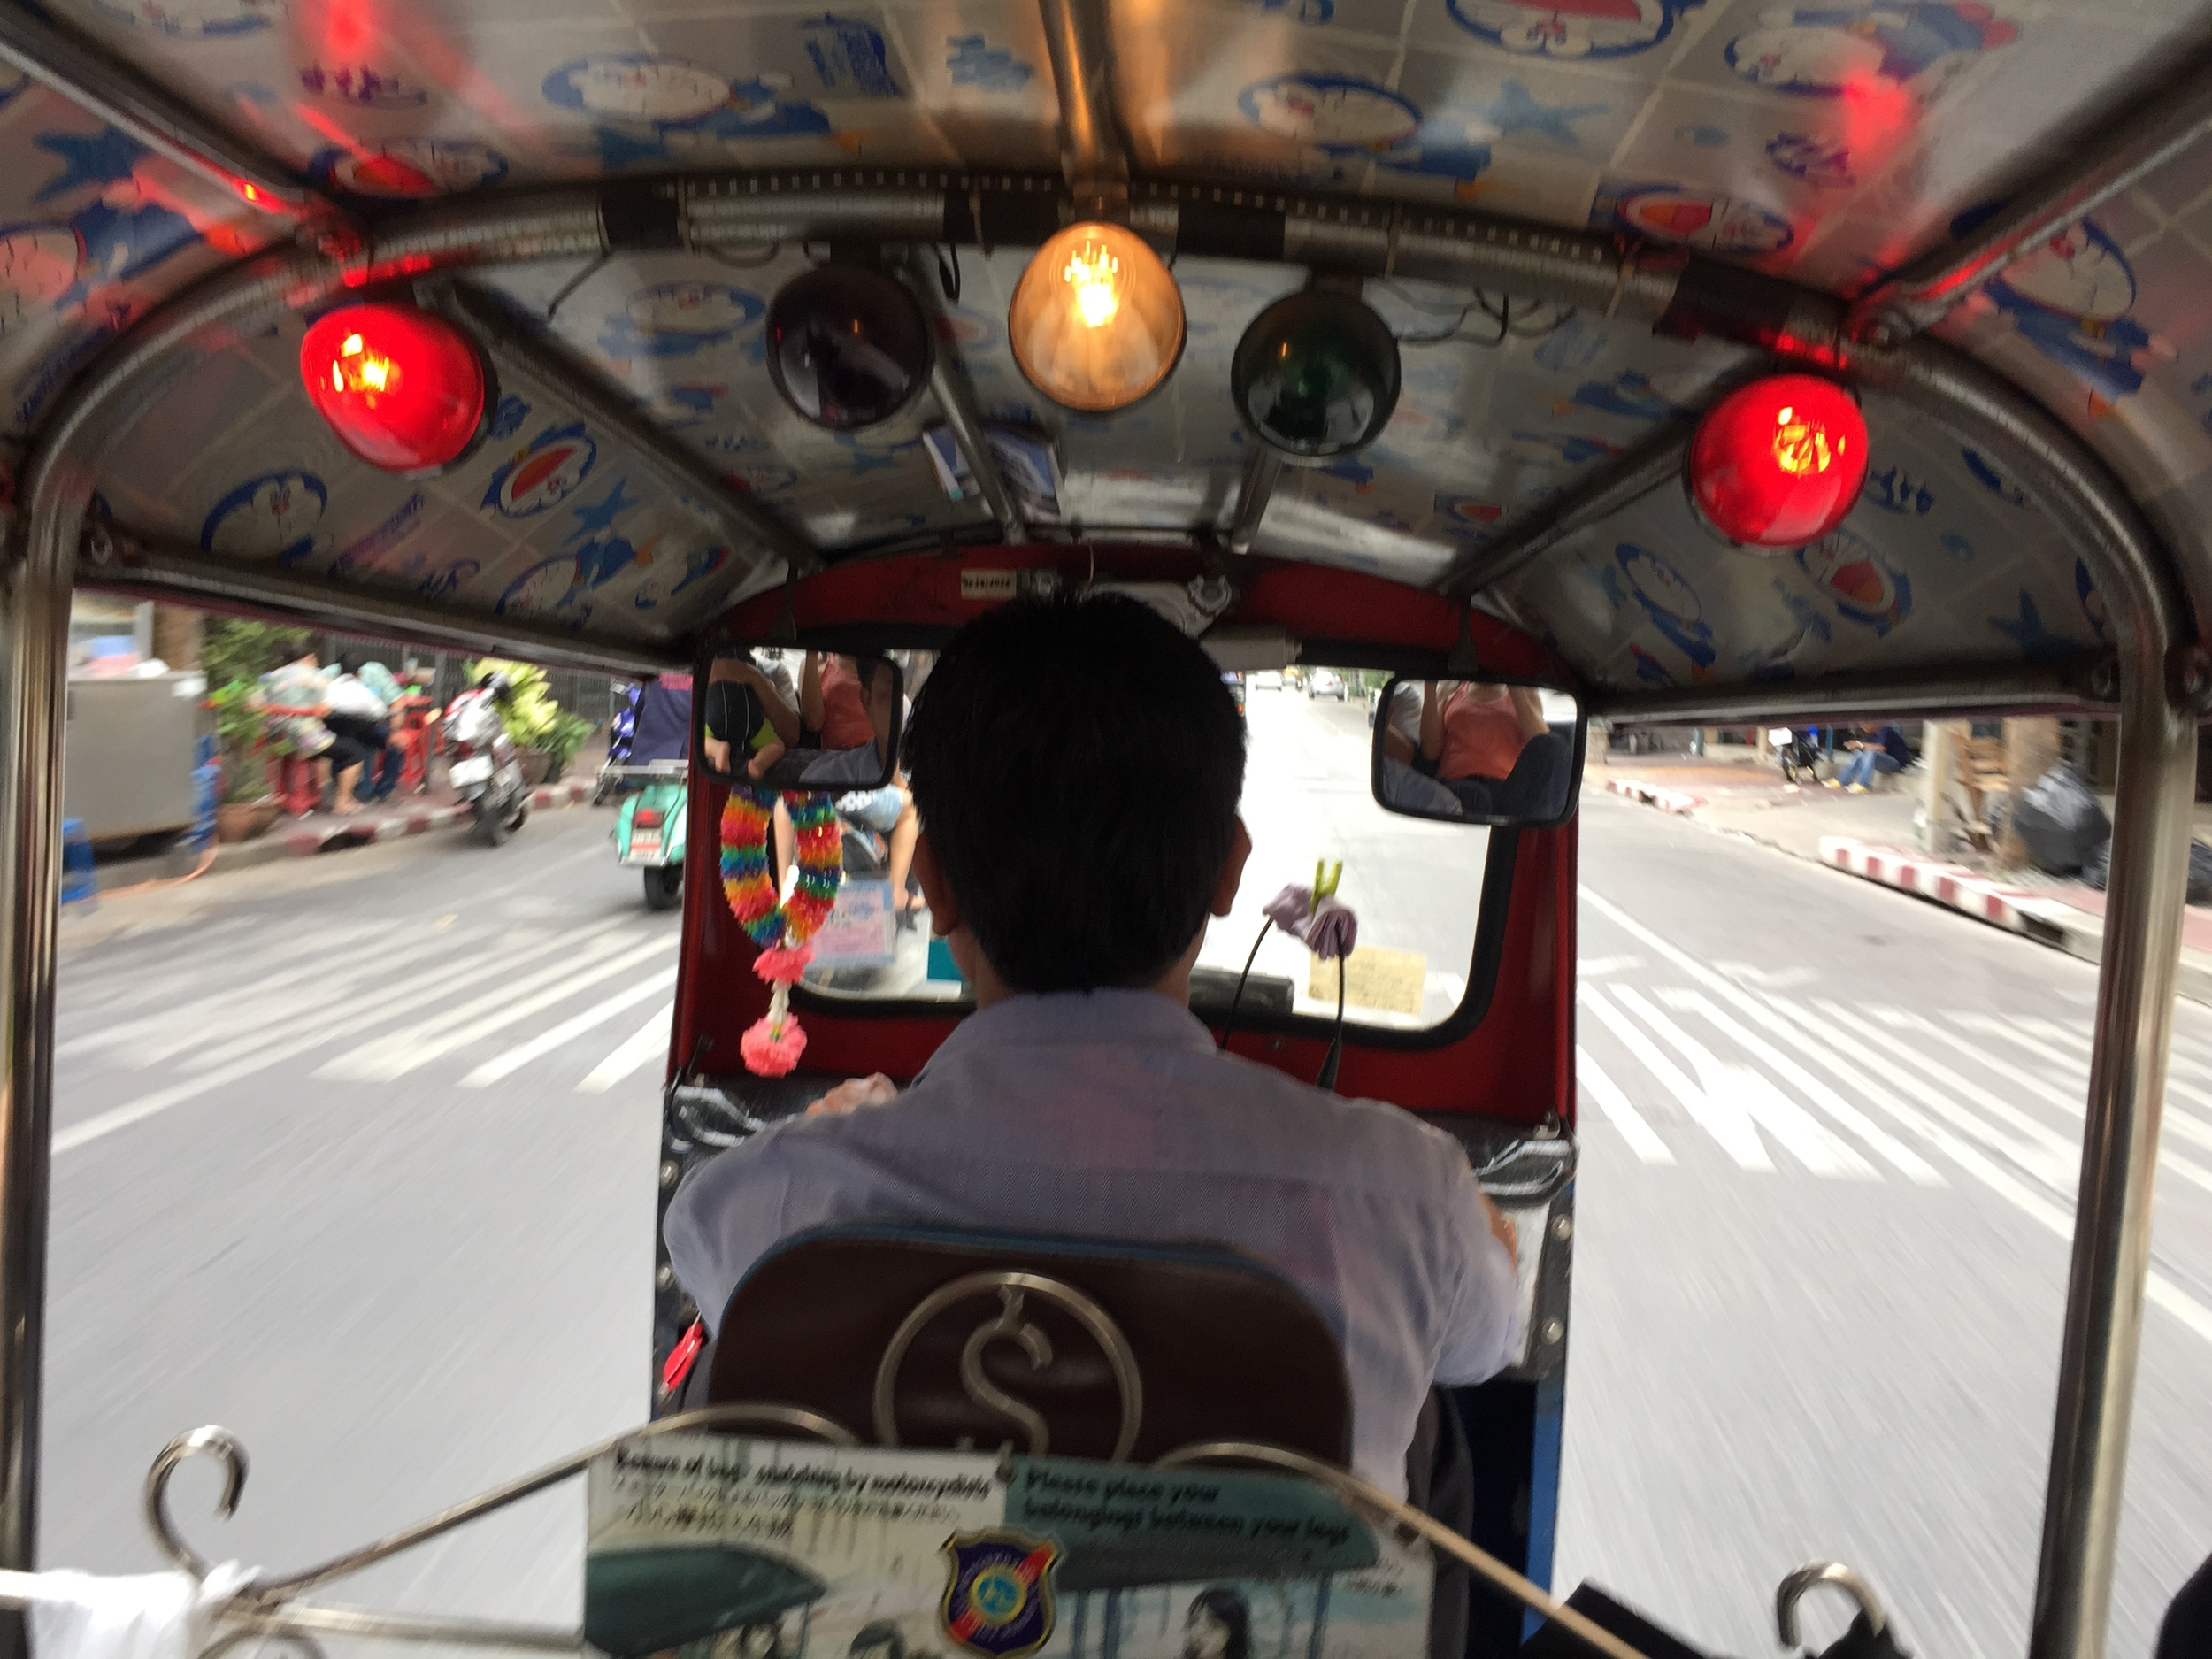 Our first Tuk Tuk ride with Antonio